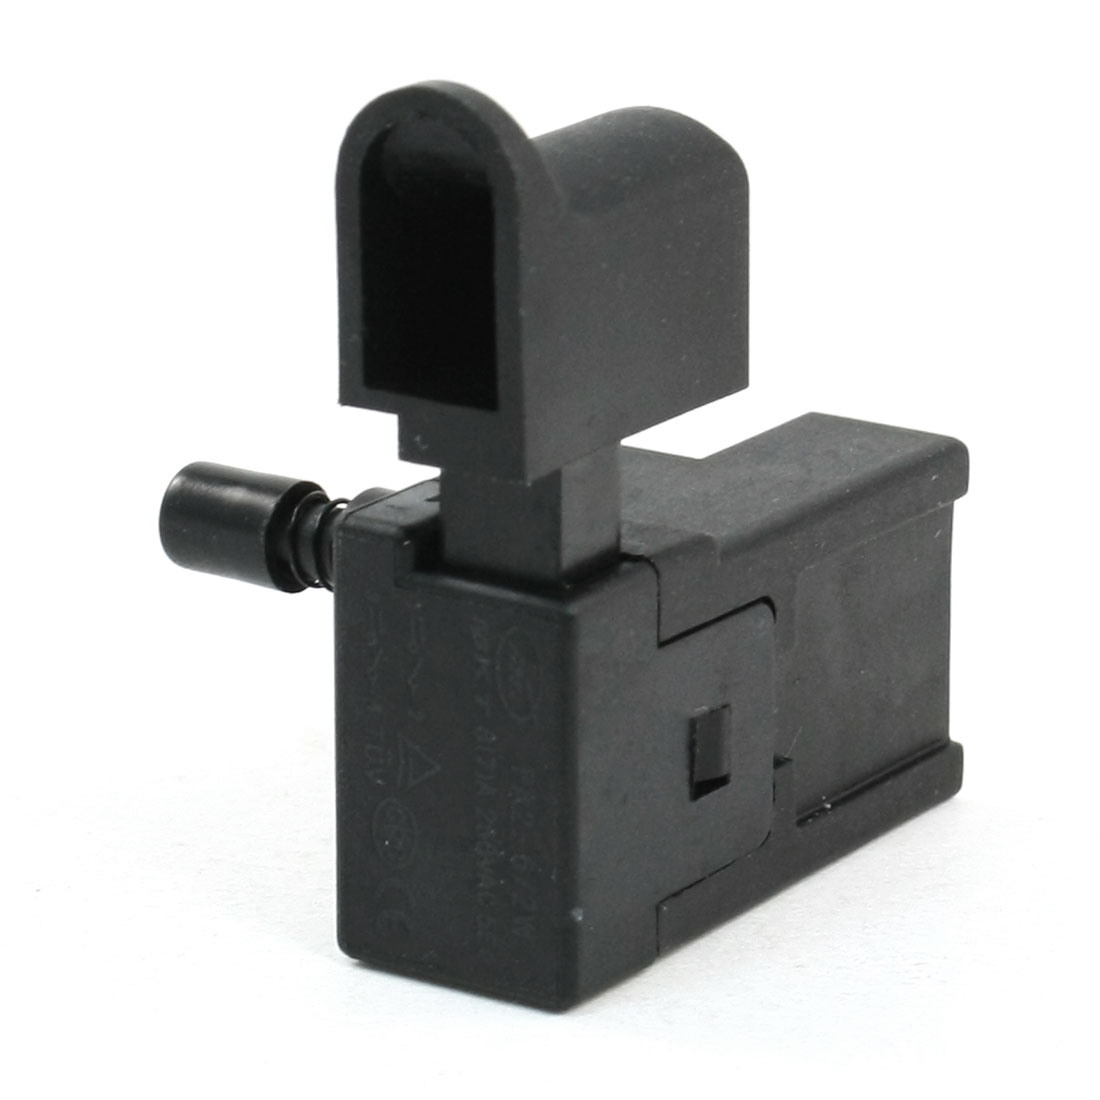 Replacements Optional Locking Trigger Switch for Makita 9035 Sander